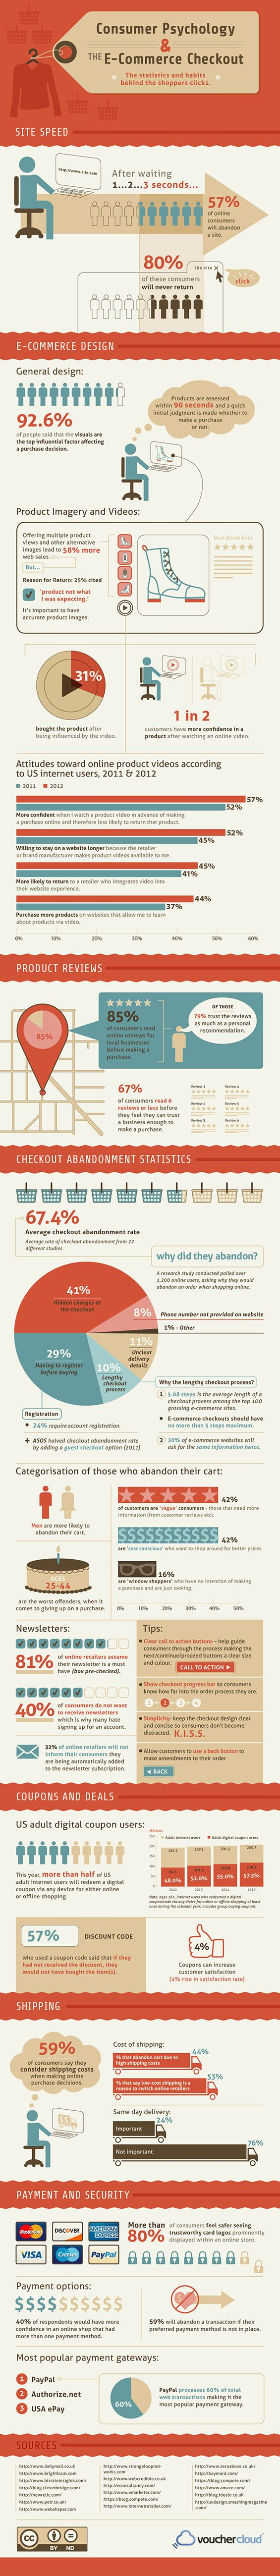 infographic-consumer-psychology-and-ecommerce-checkouts-infographic